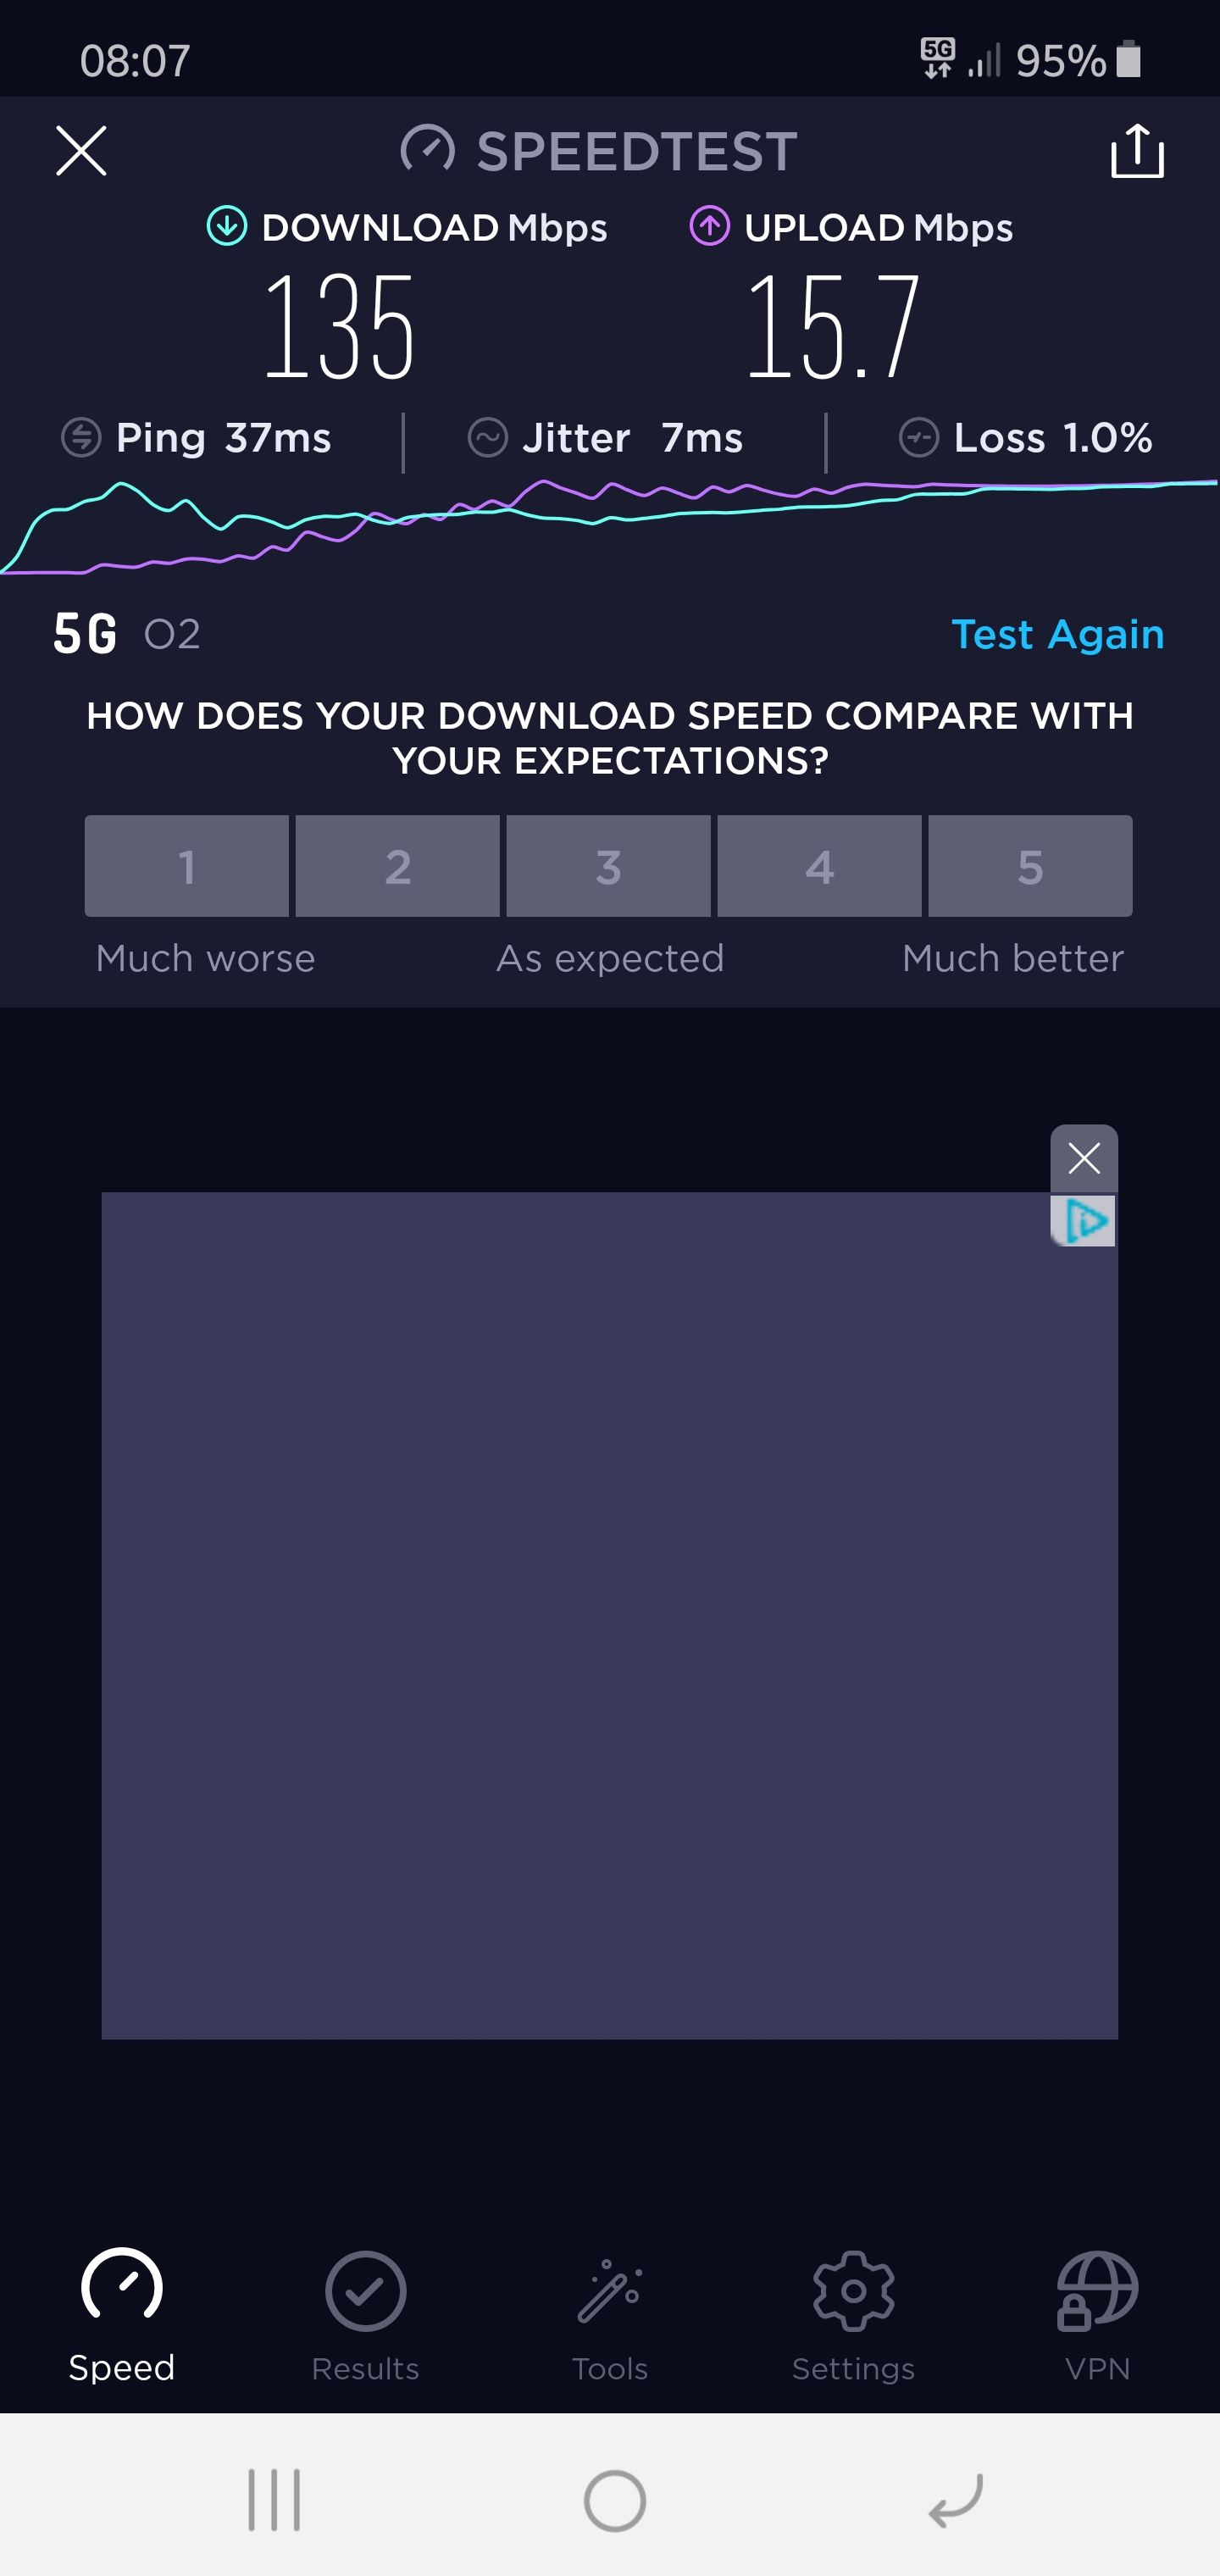 Screenshot_20191021-080736_Speedtest.jpg